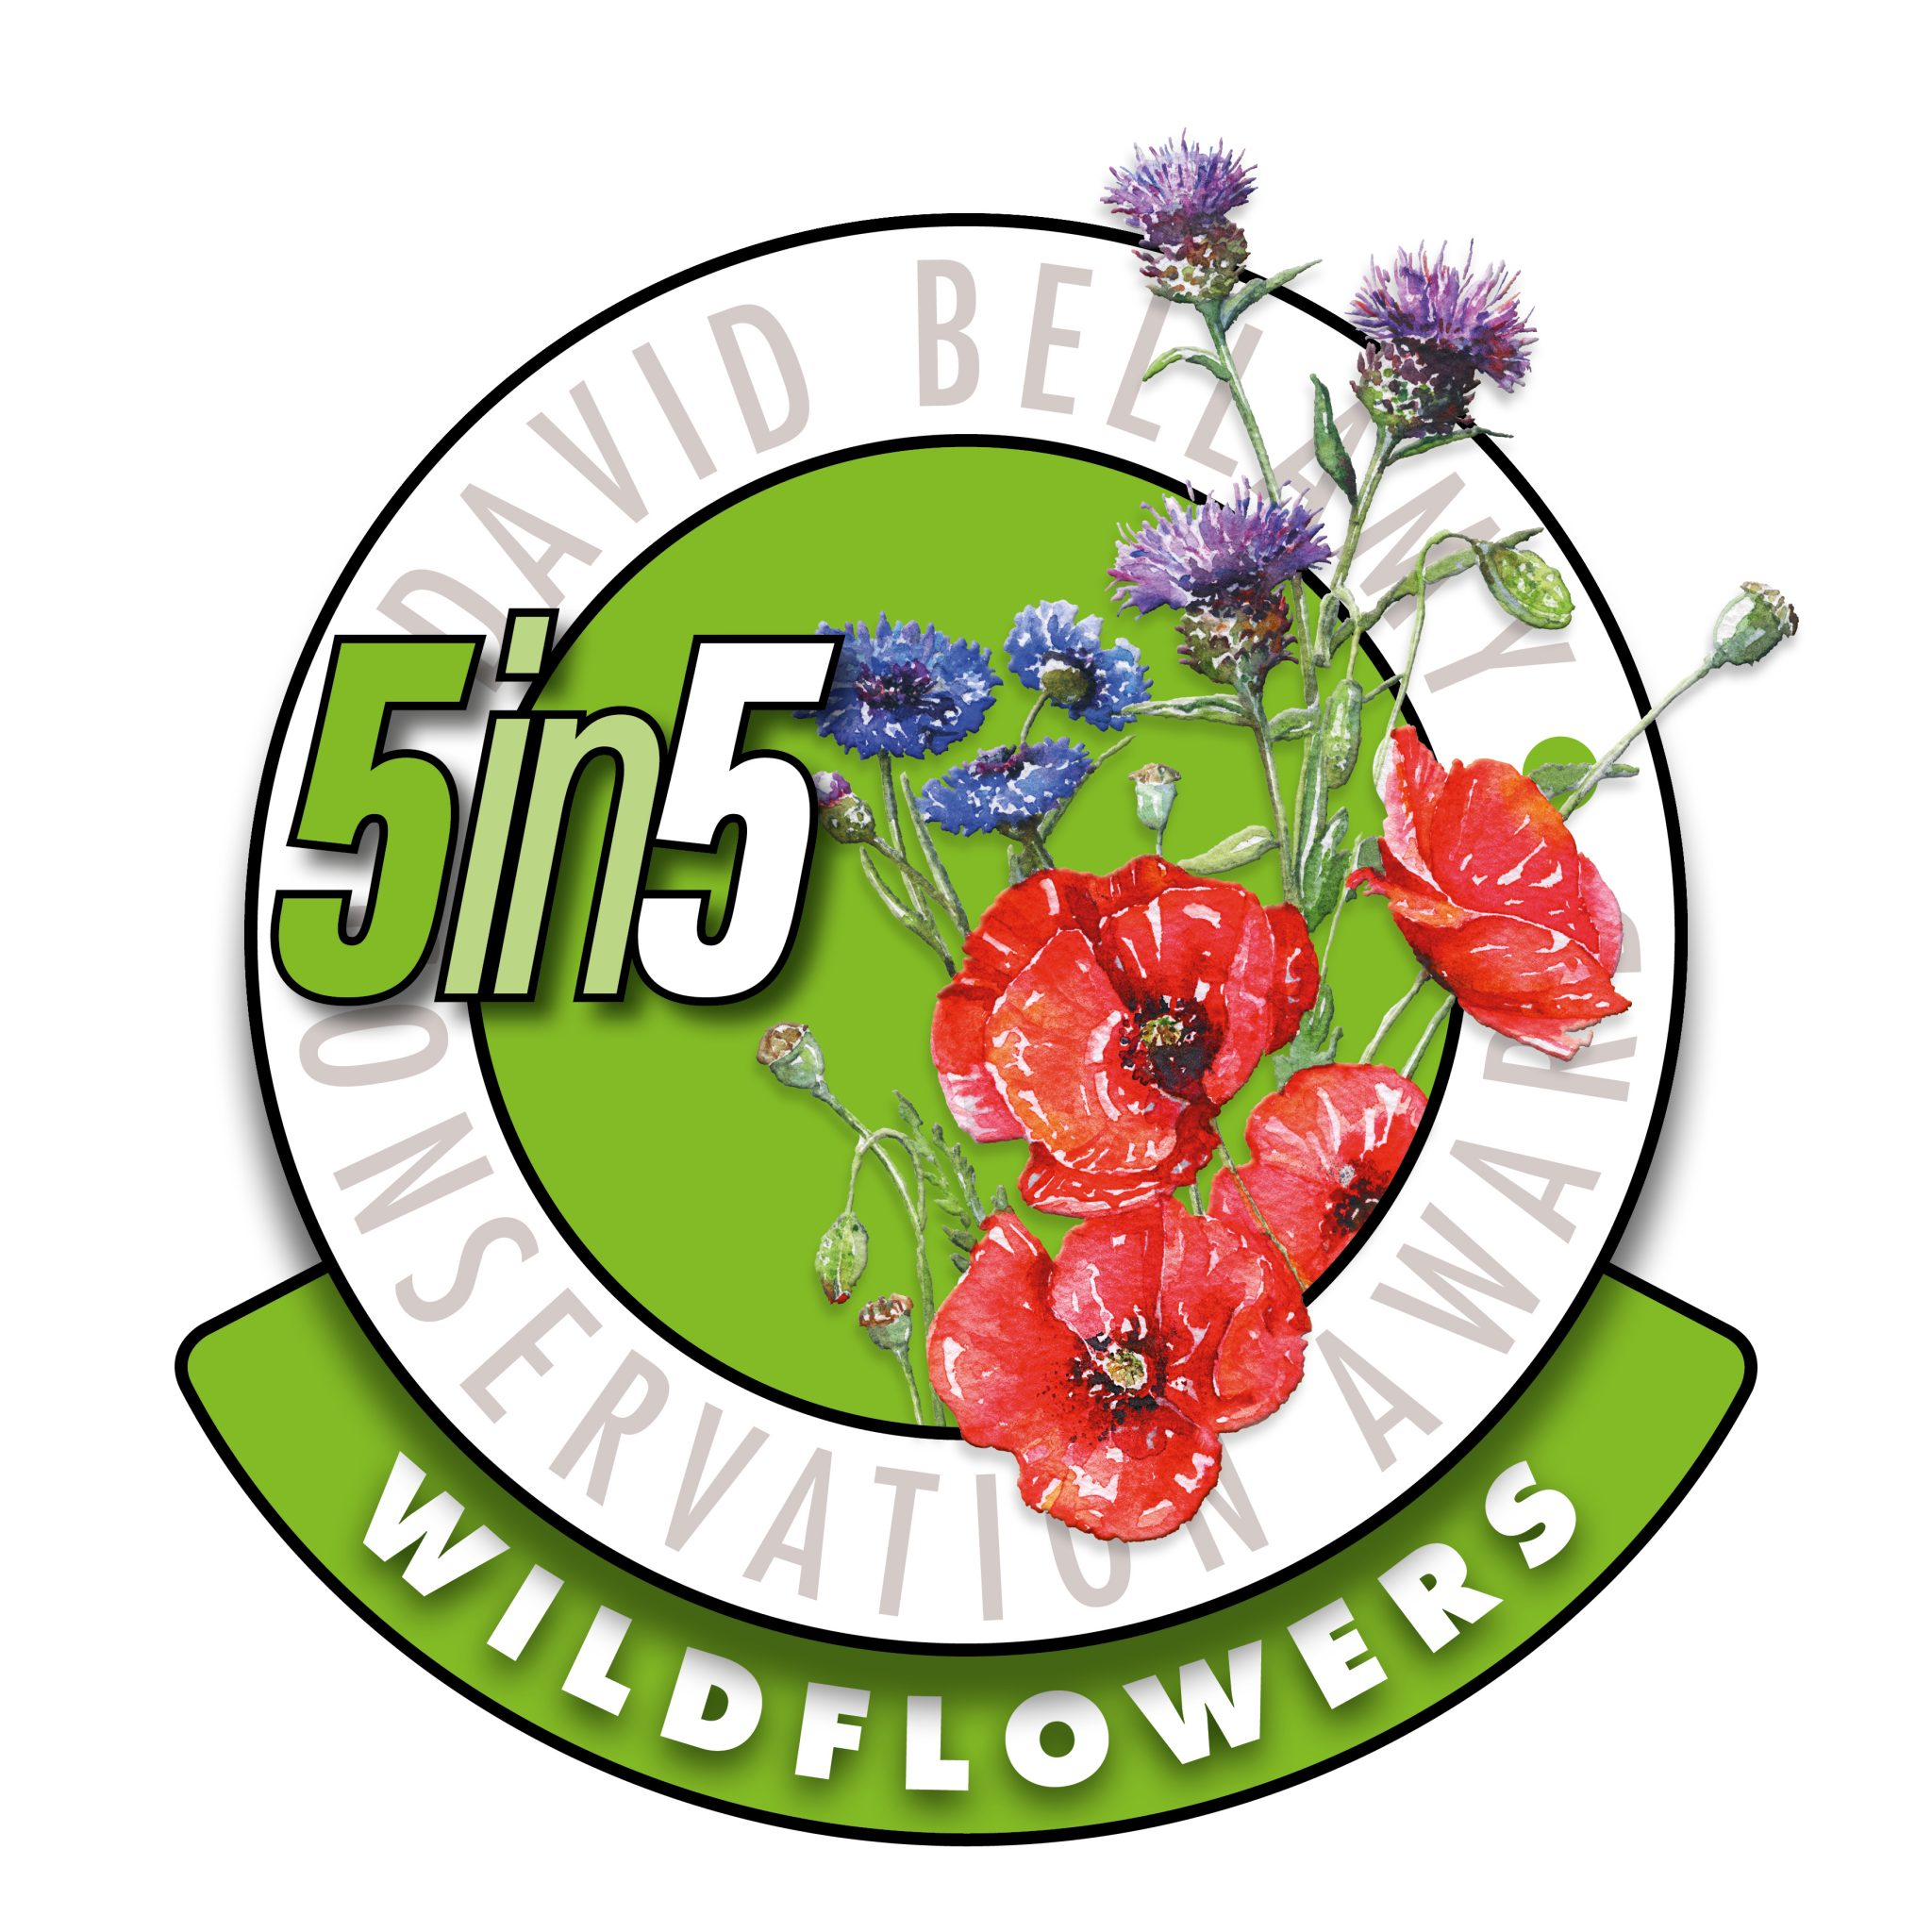 Wildflower Conservation Award